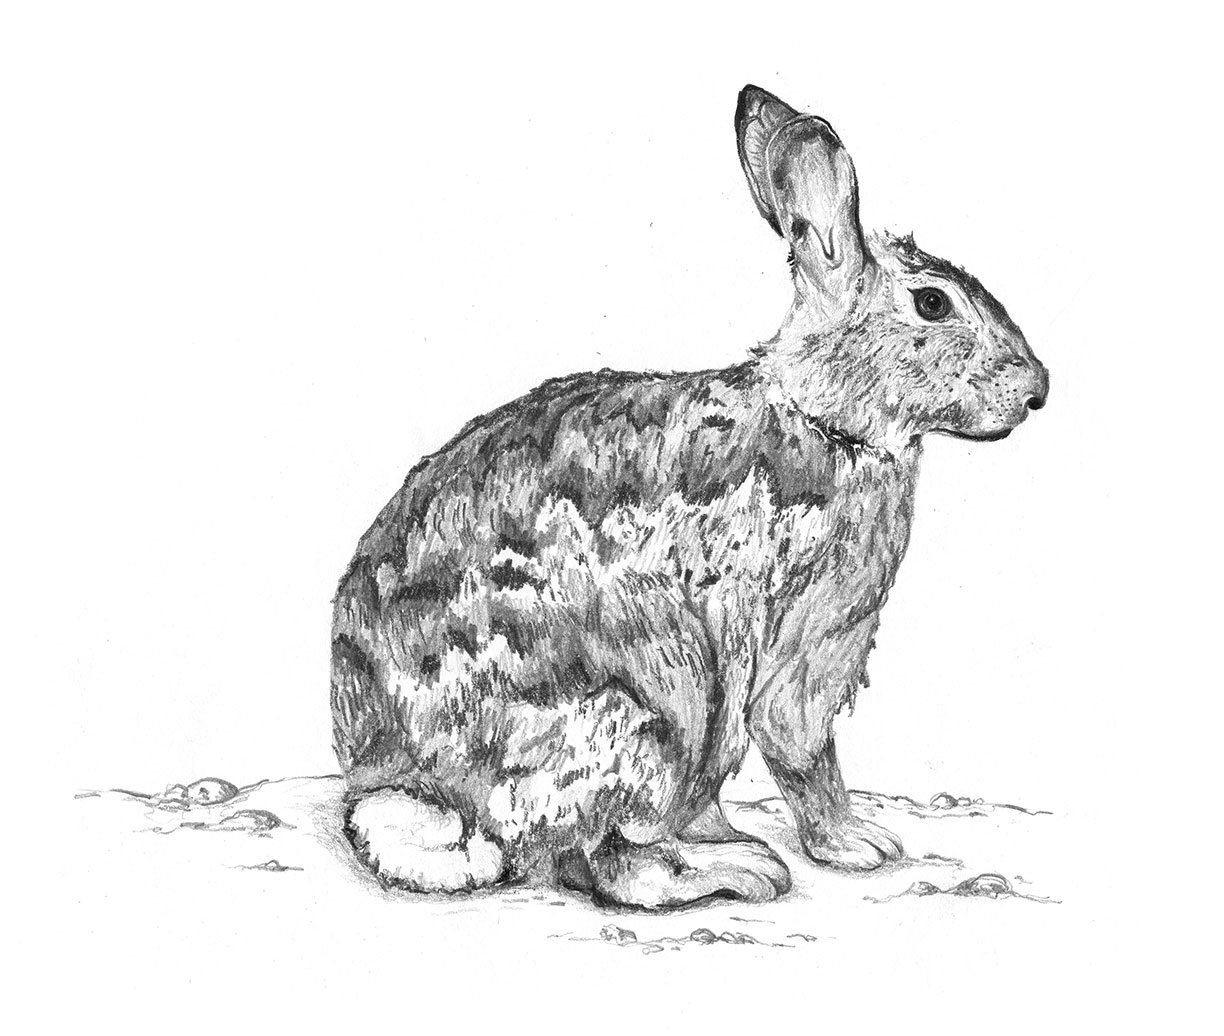 Cottontail by LK Weiss